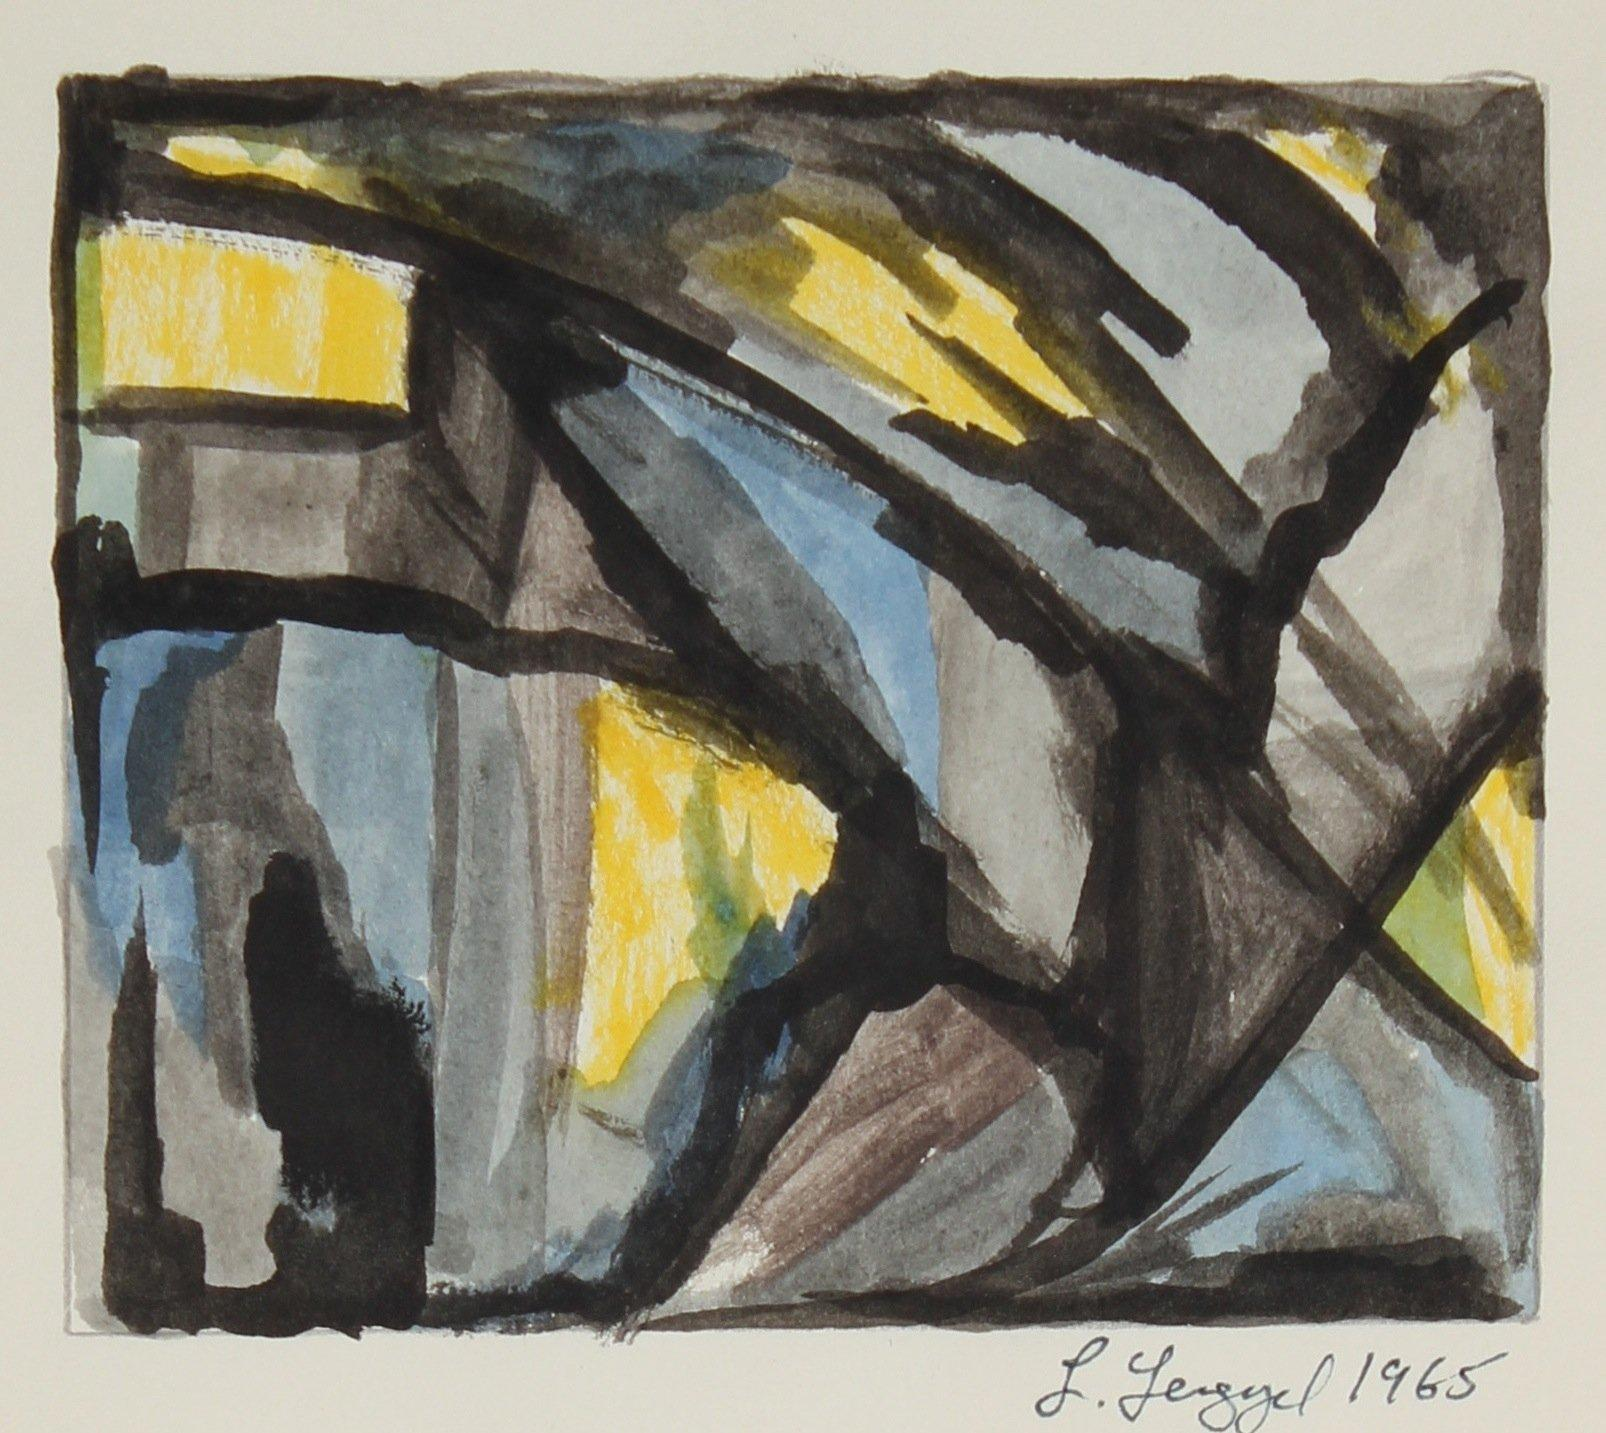 Geometric Abstract 1965 Gouache on Paper Painting